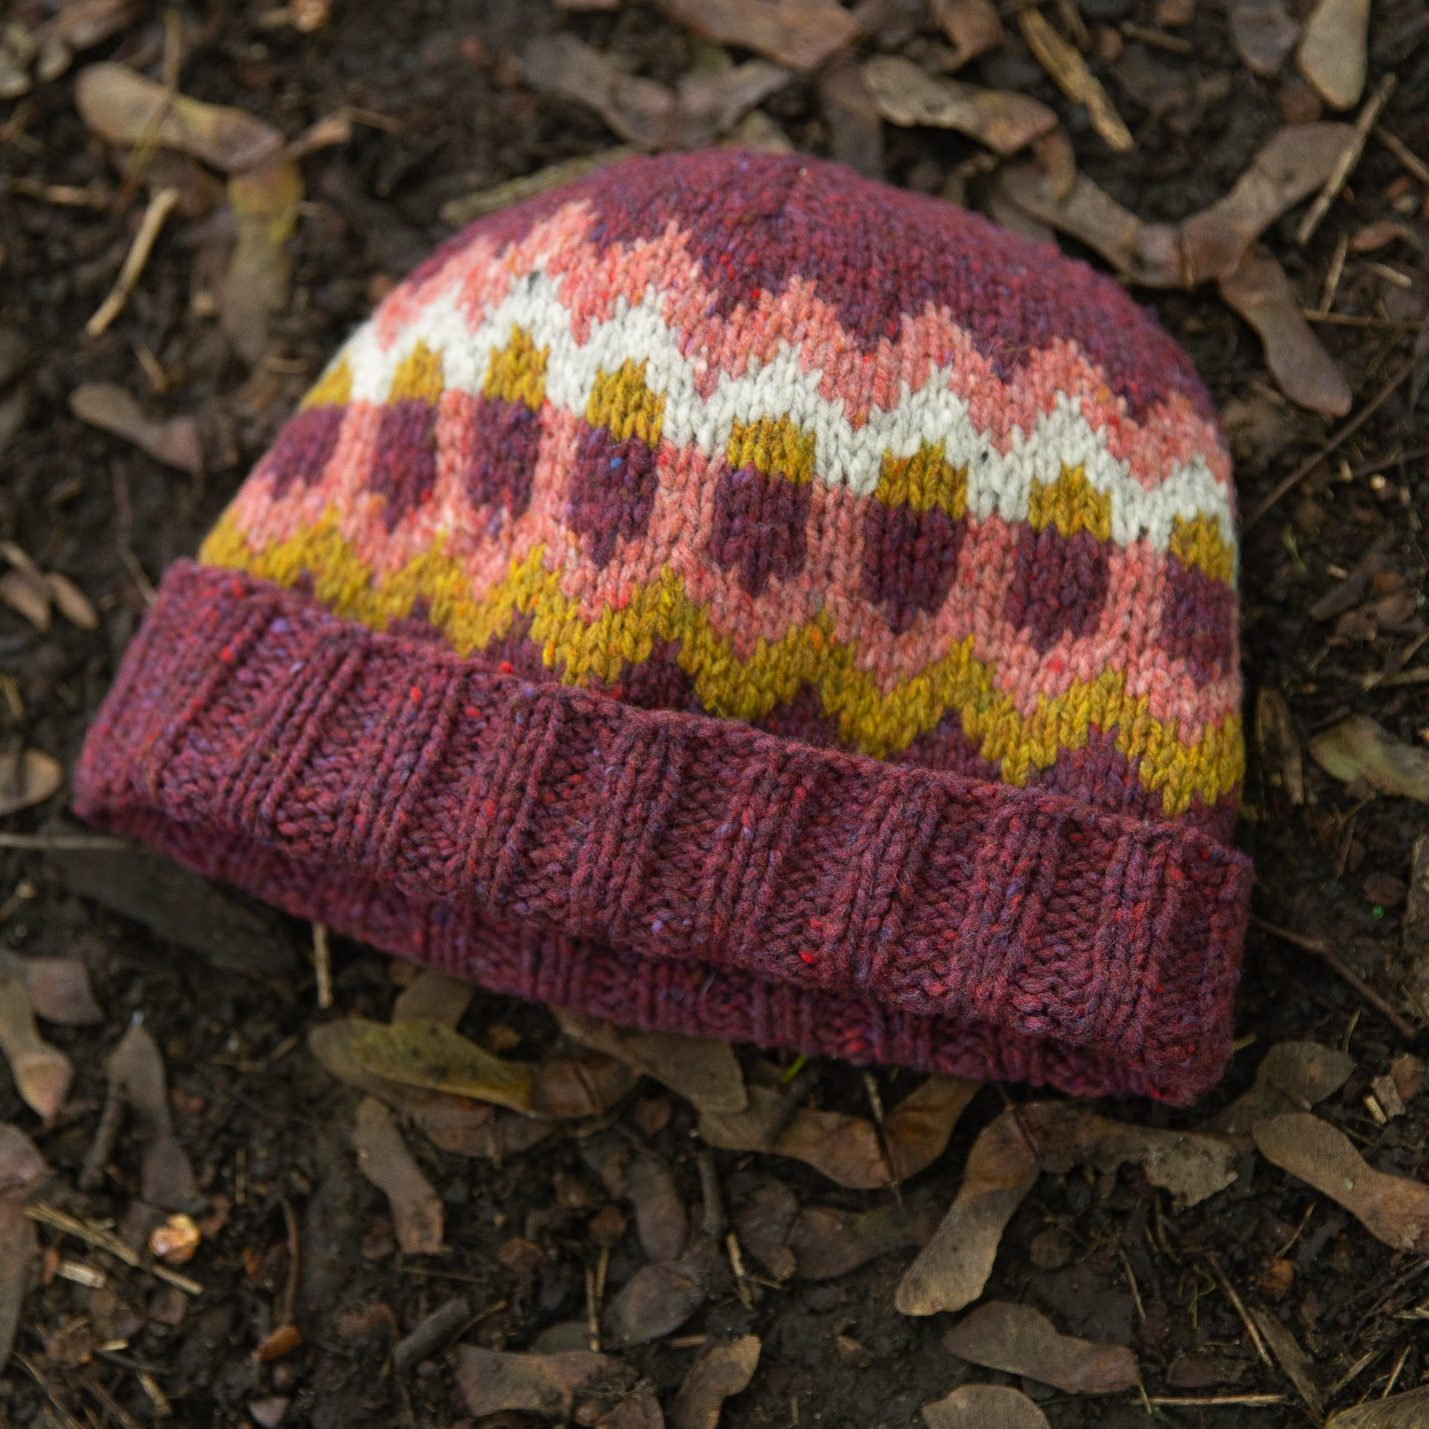 A colourwork hat on ground. The hat is a purple-ish pink with mustard, pink, and white colourwork motifs.